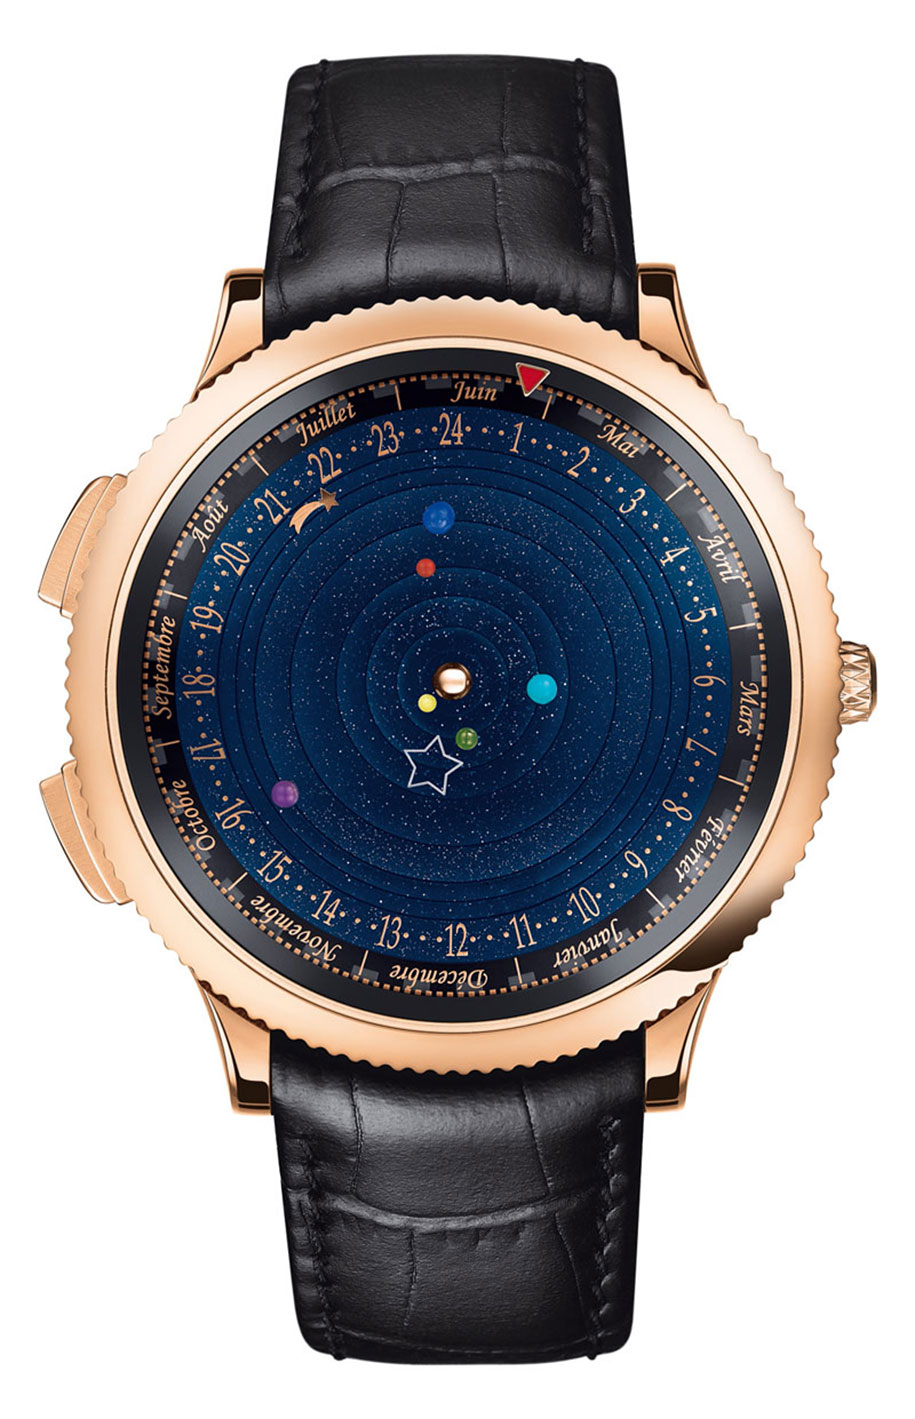 astronomical watch accurately shows the solar system�s